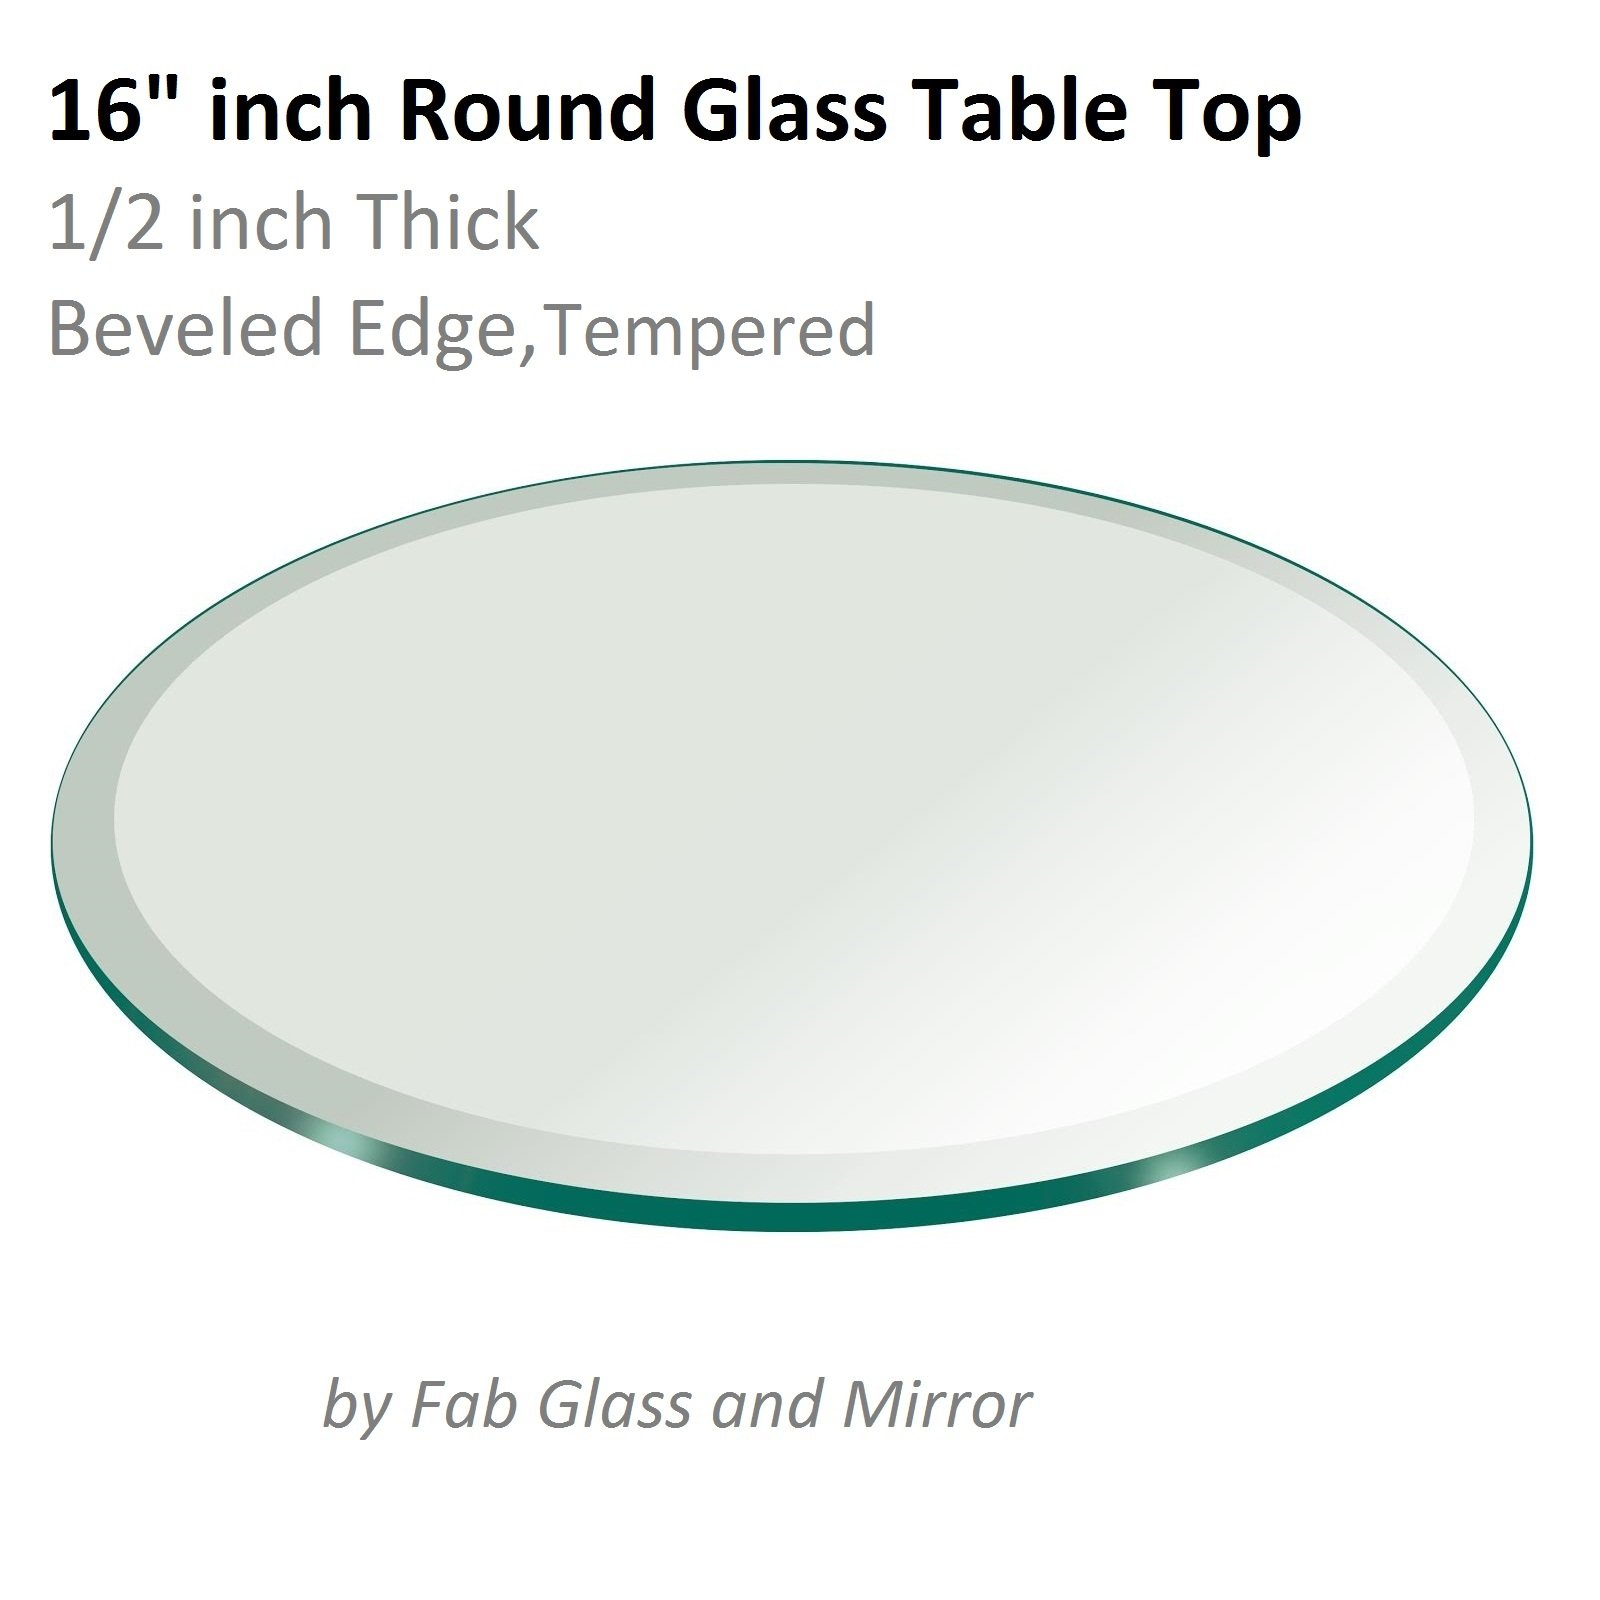 16'' Inch Round Glass Table Top 1/2'' Thick Tempered Beveled Edge by Fab Glass and Mirror by Fab Glass and Mirror